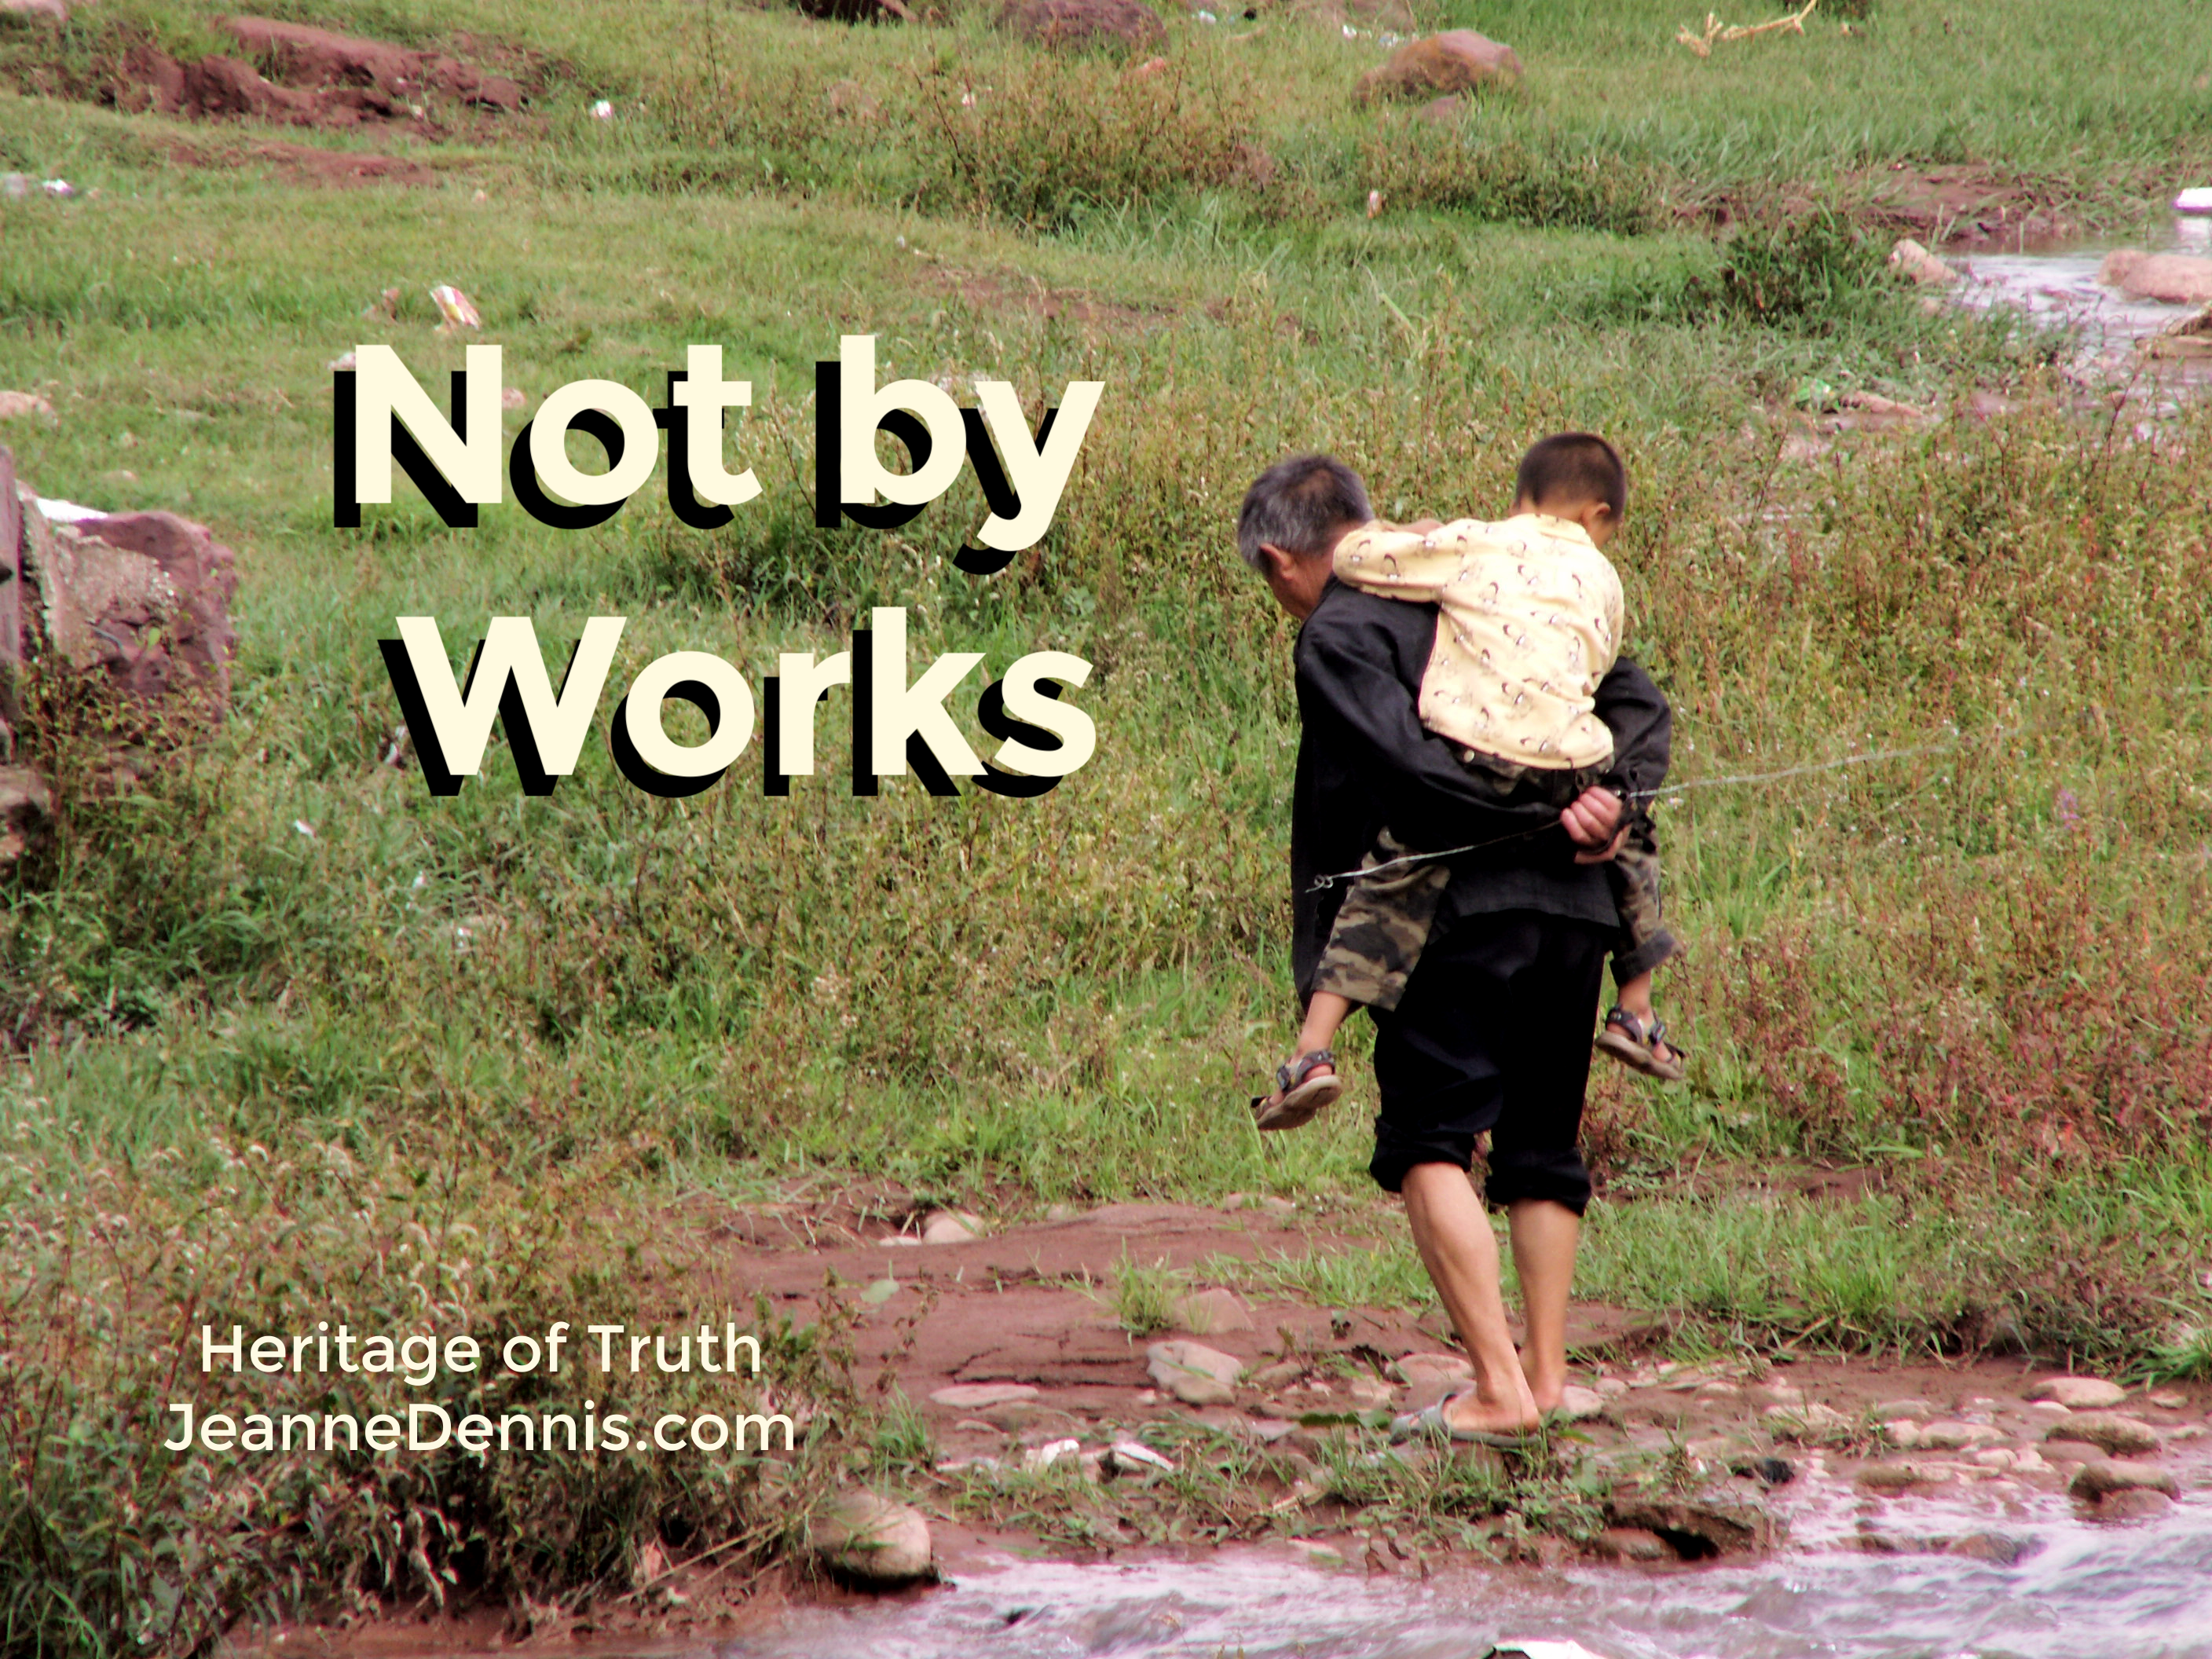 Not by Works, Heritage of Truth, JeanneDennis.com